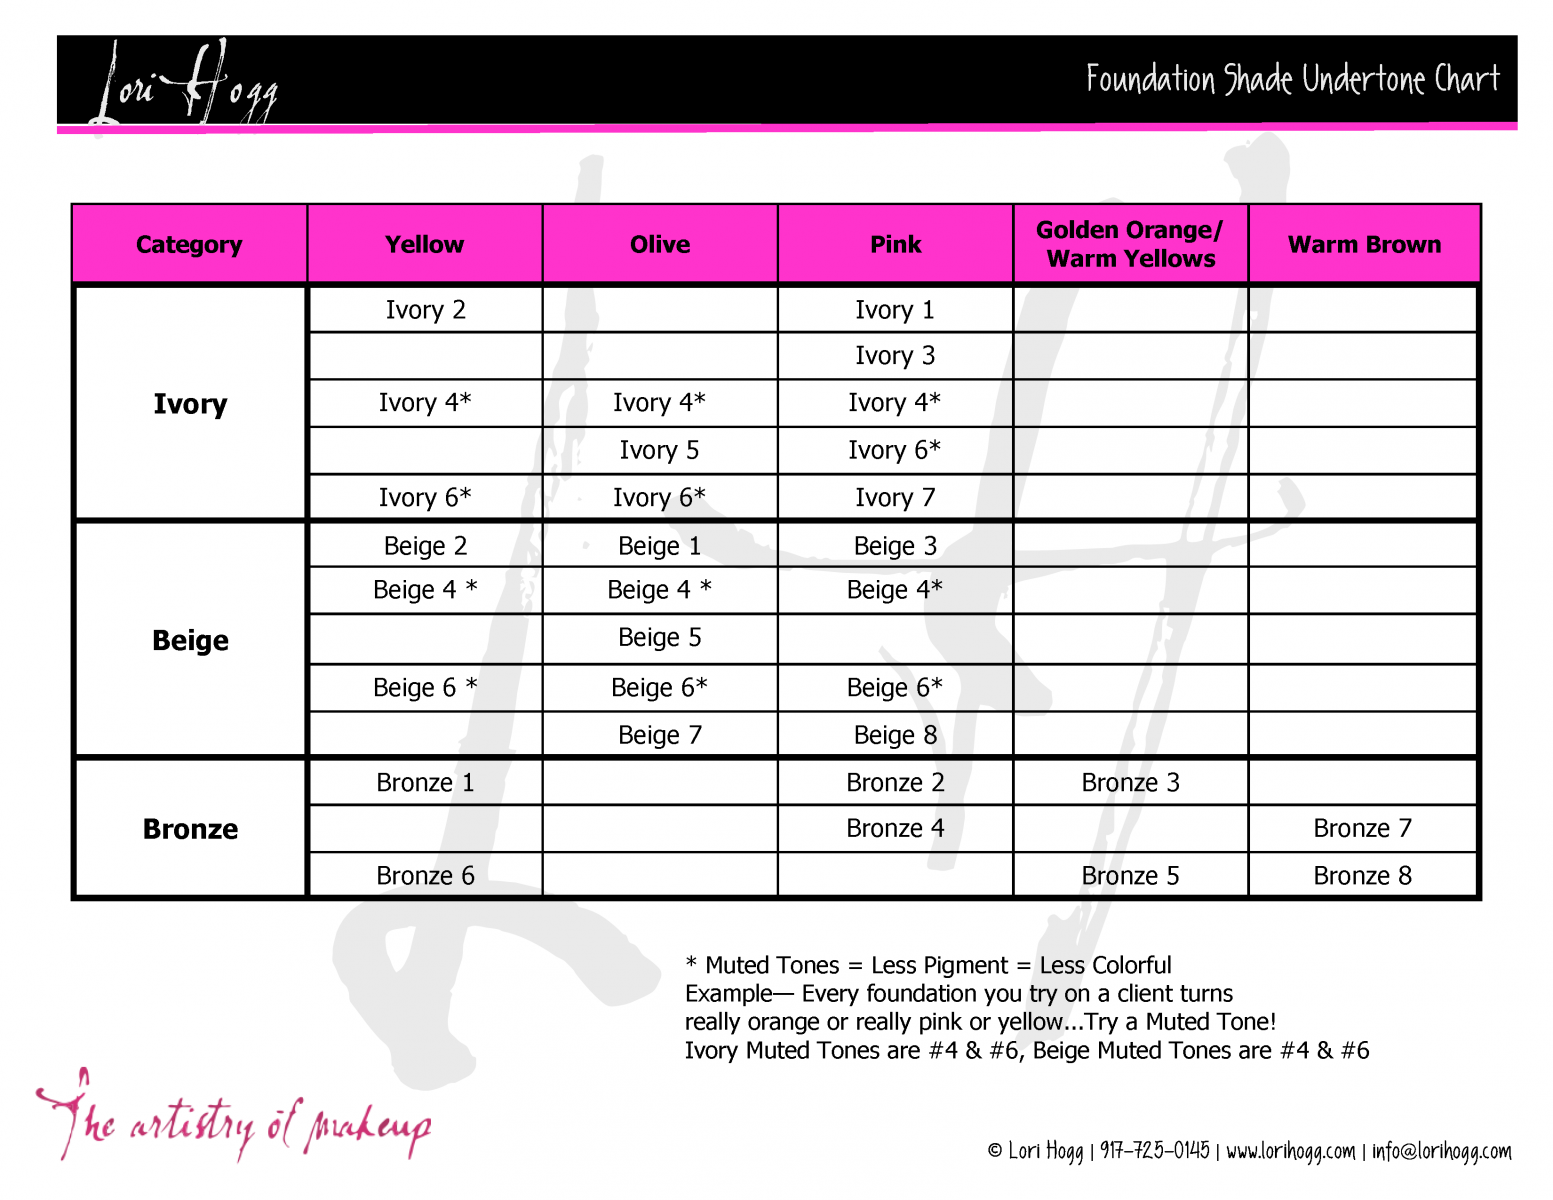 mary kay organization structure Sales directors, a compensation structure to allow women to earn commensurate with their organization mary kay traditionally presided over the event.